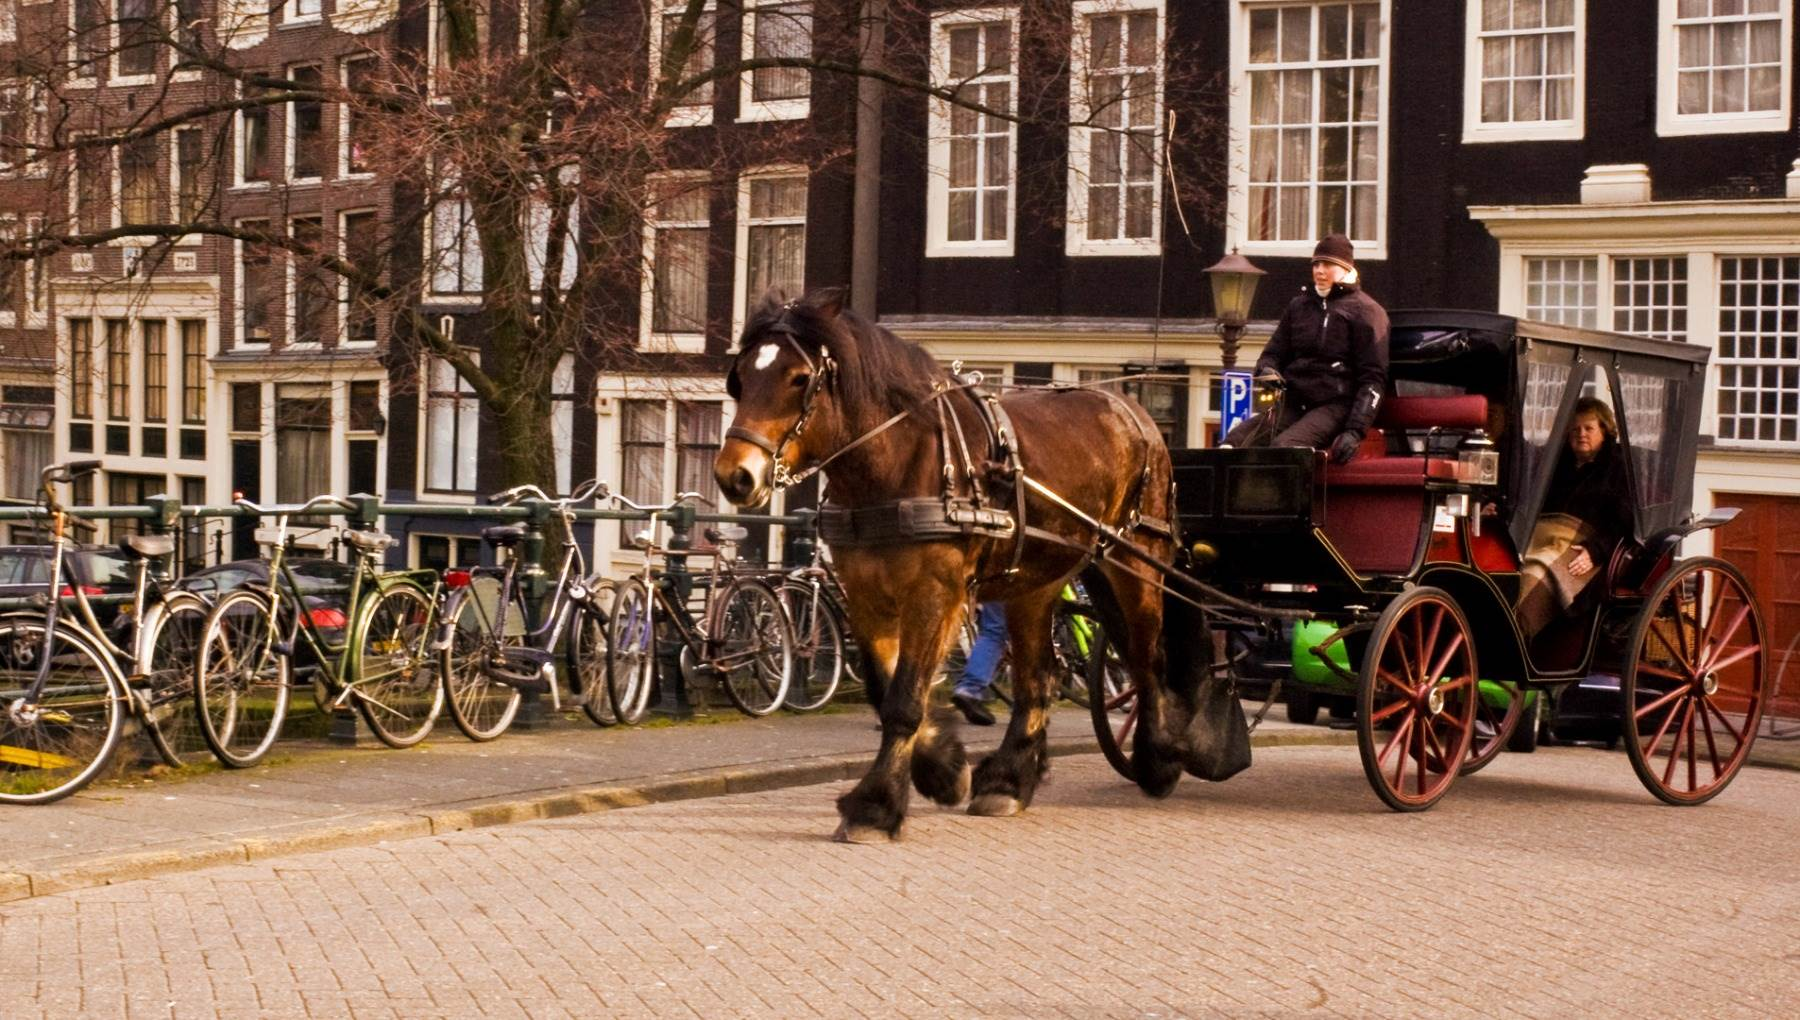 Horse and carriage ride in Amsterdam by Tavallai